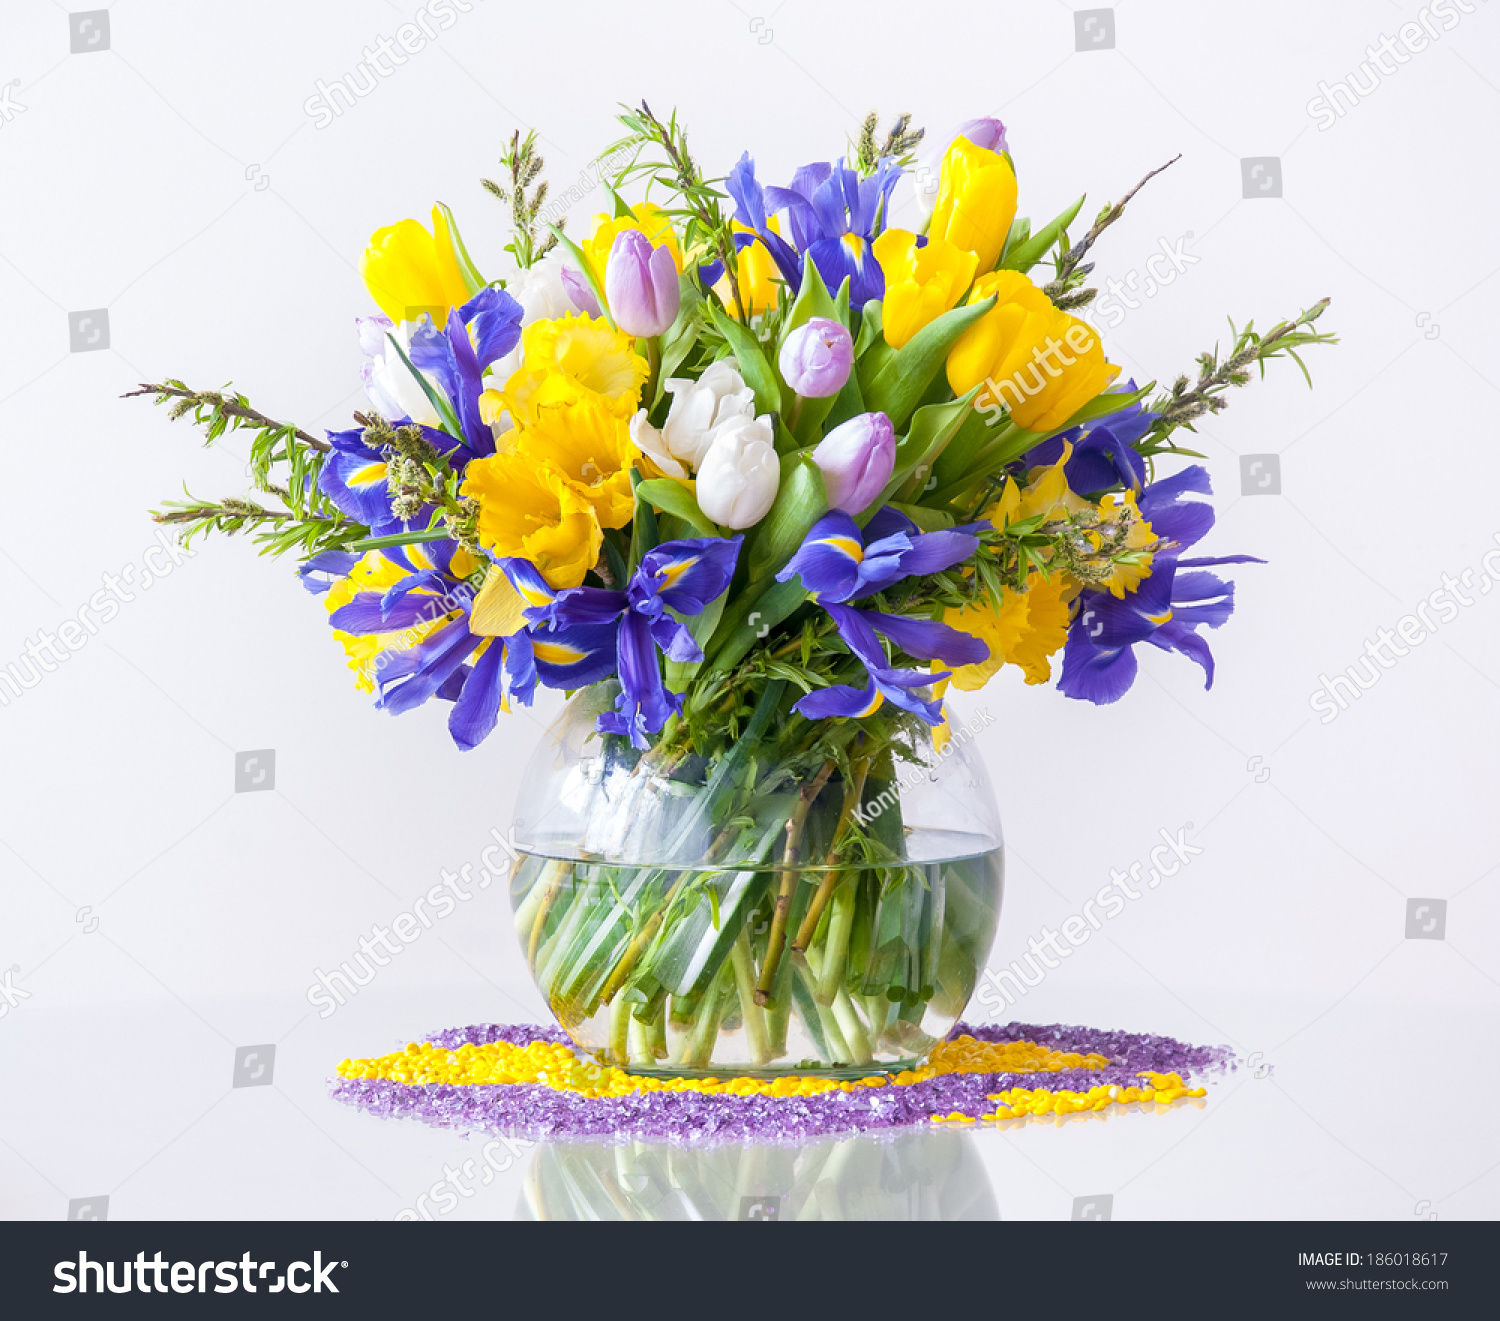 Bouquet daffodils tulips fleurdelises on white stock photo edit now bouquet of daffodils tulips and fleur de lises on white background typical spring izmirmasajfo